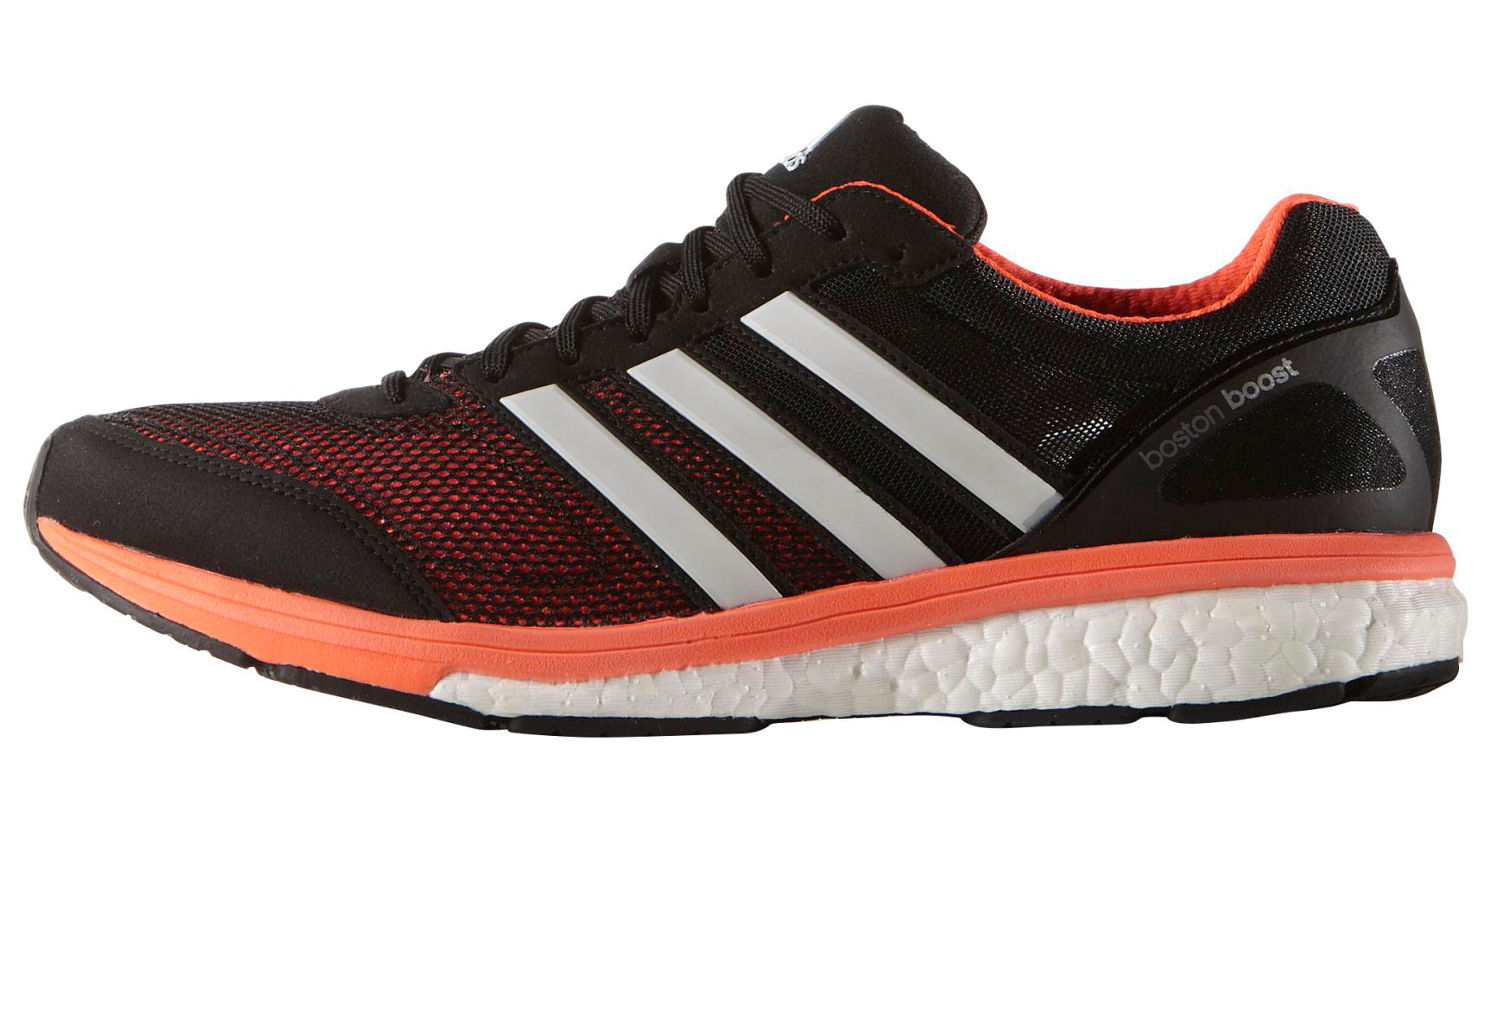 buy online dfe79 65a70 adidas Adizero Boston Boost 5 mens Running Shoes